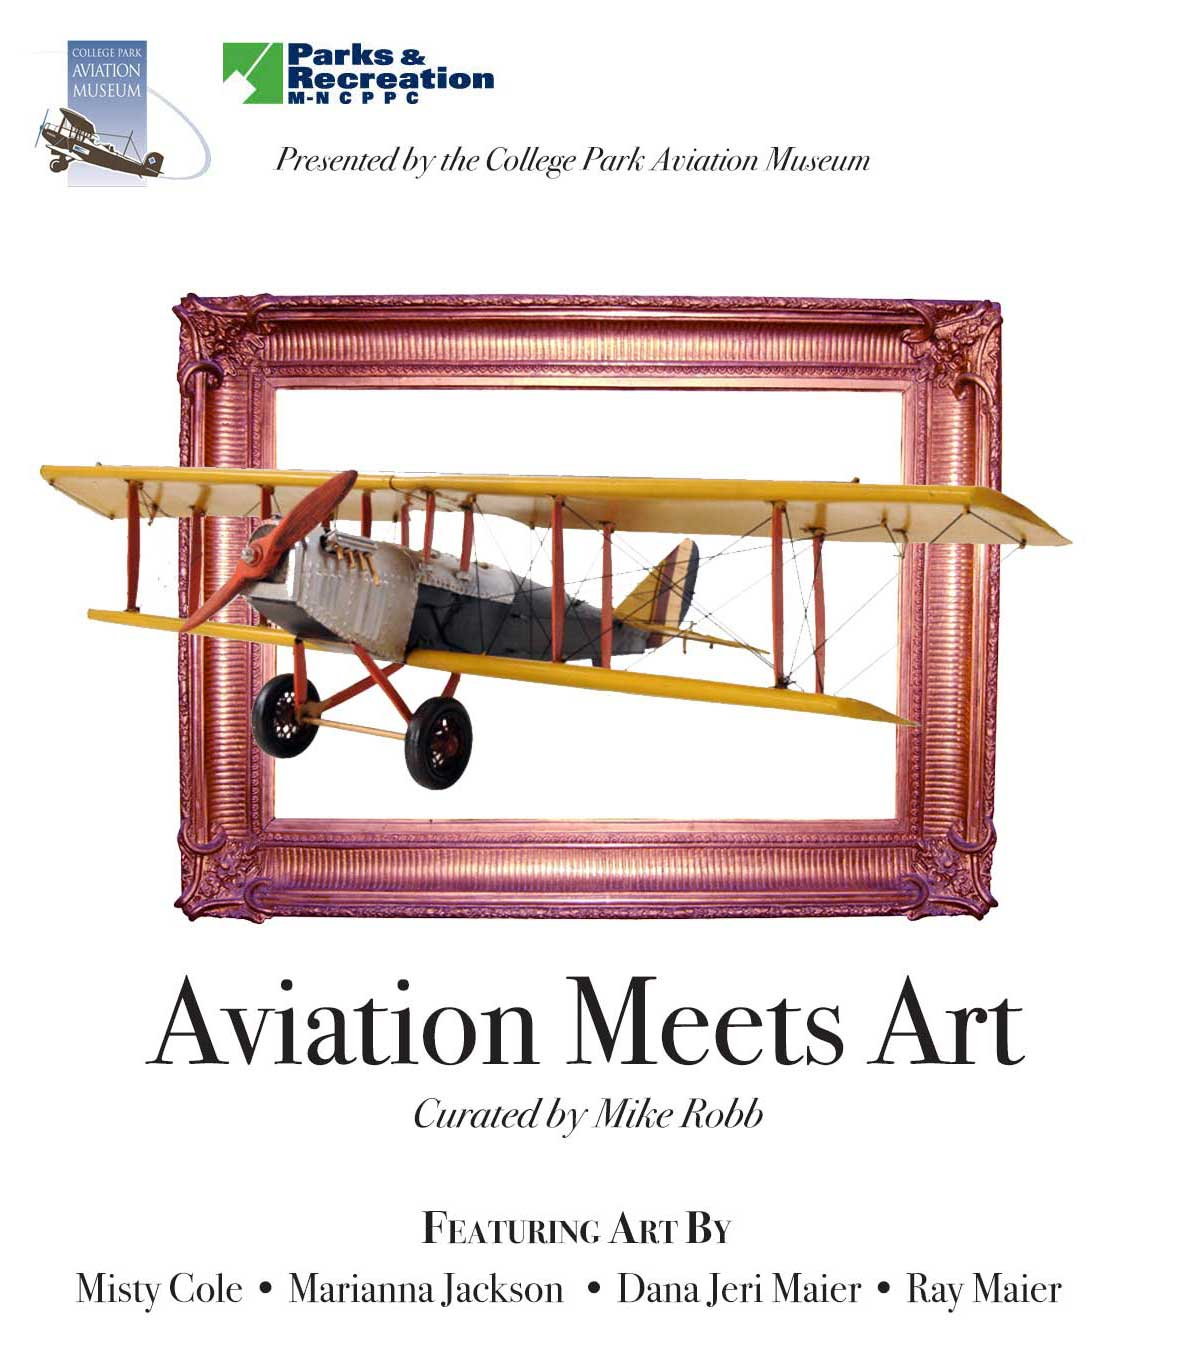 AviationMeetsArt_WebCropped.jpg